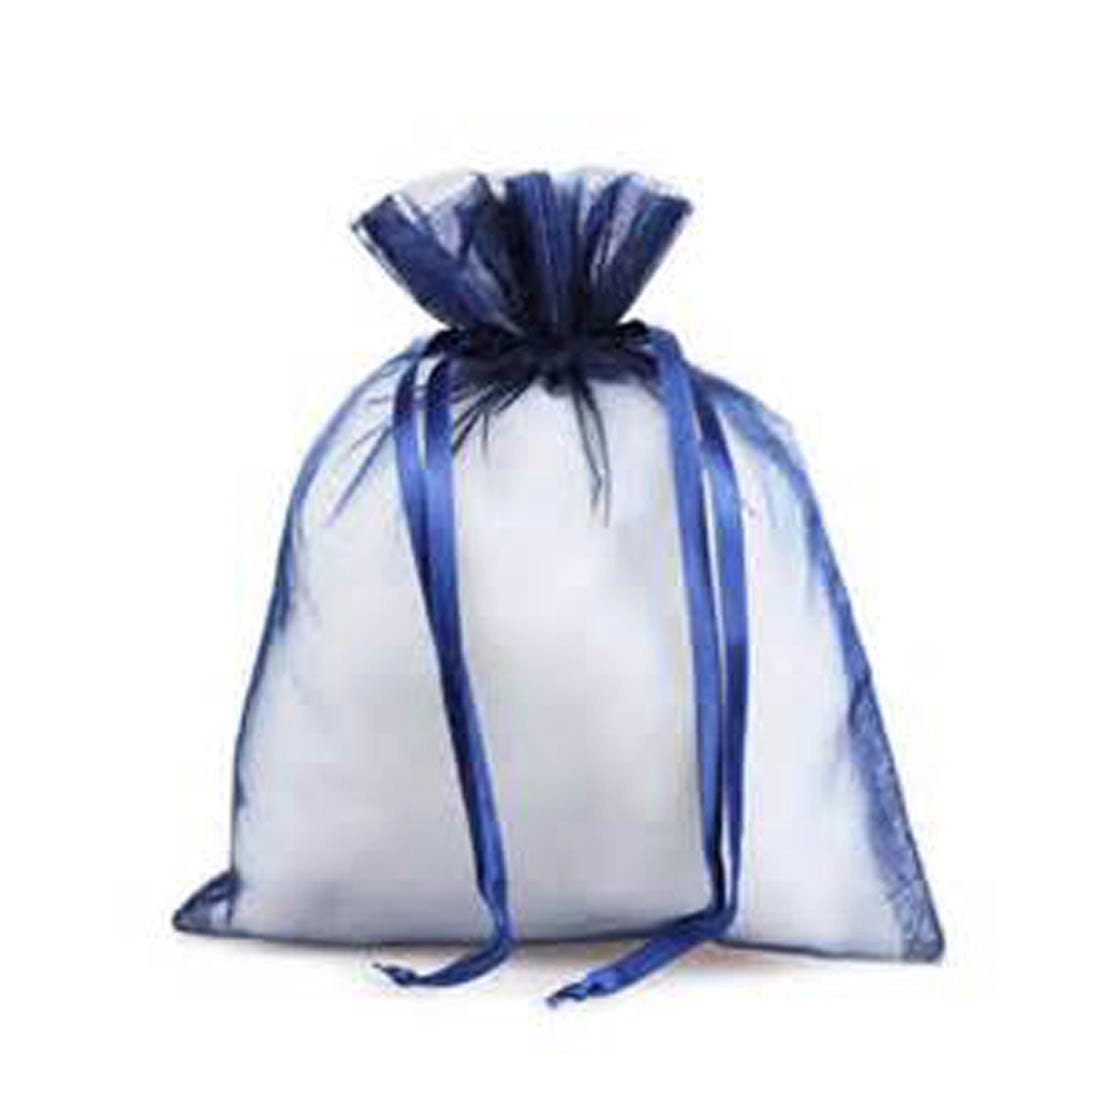 Bag, Organza, Navy Blue, Satin Drawstring 3 x 4 Package of 5